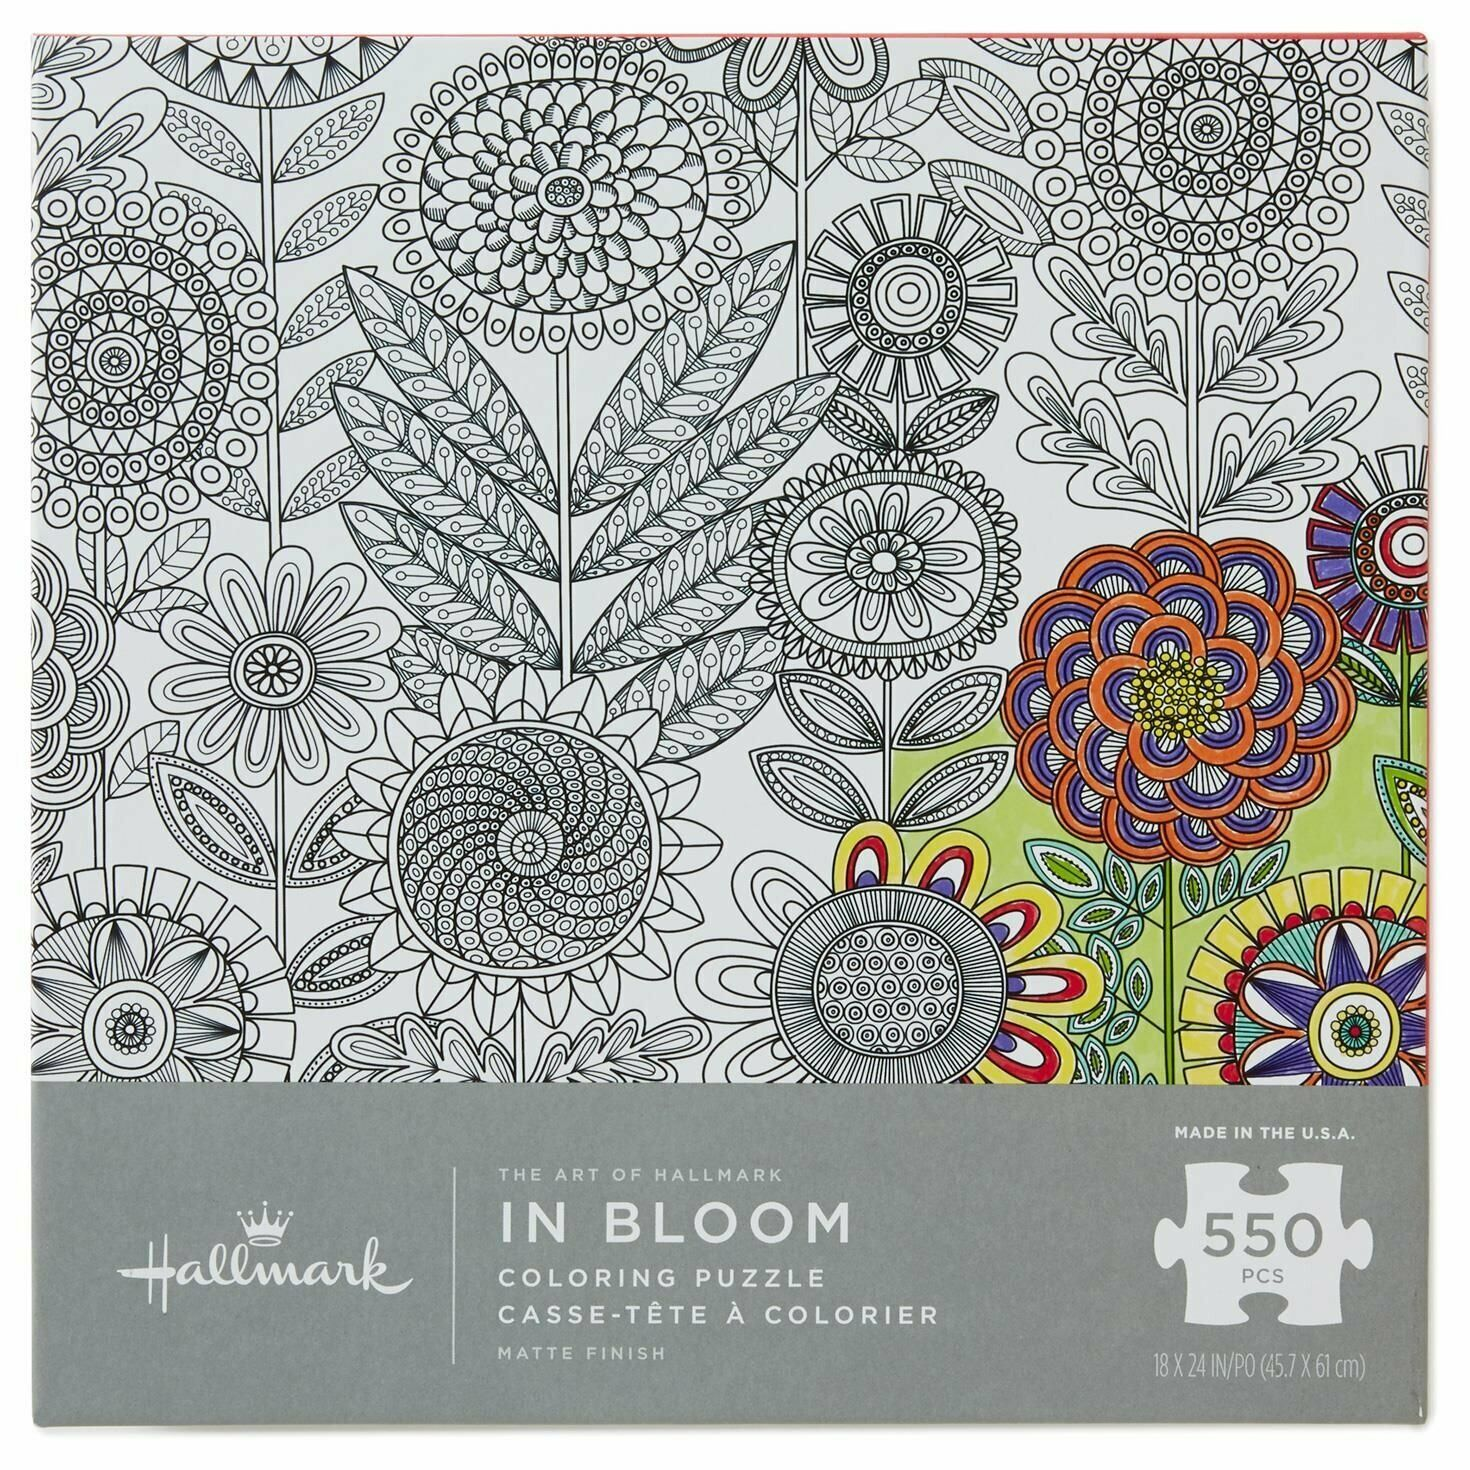 In Bloom Color Your Own Hallmark Puzzle Flowers Mandala Game Night